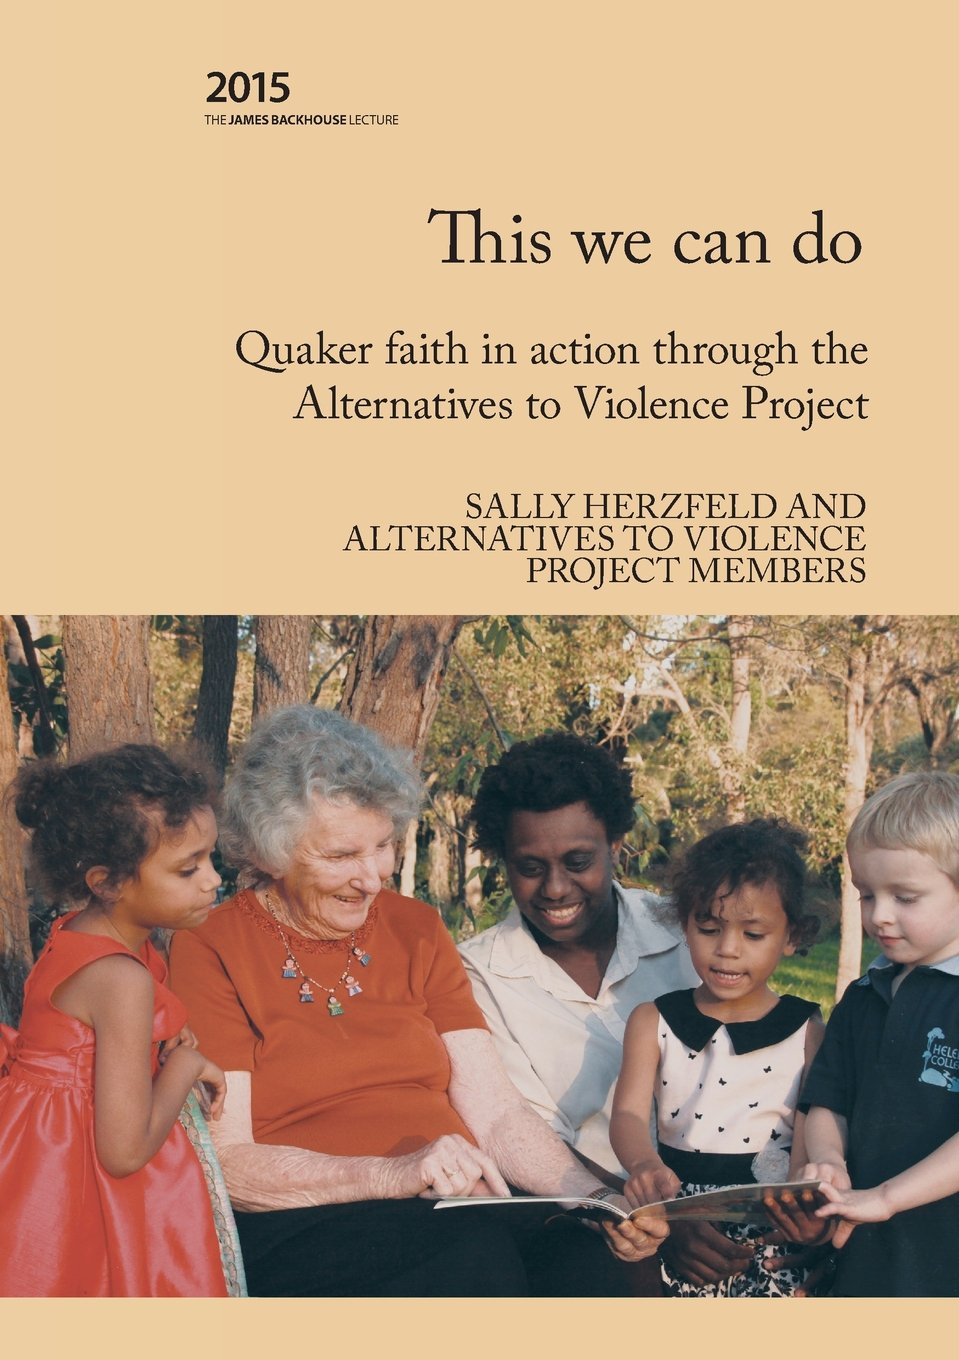 This we can do: Quaker faith in action through the Alternatives to Violence Project (2015 Backhouse Lecture Series)